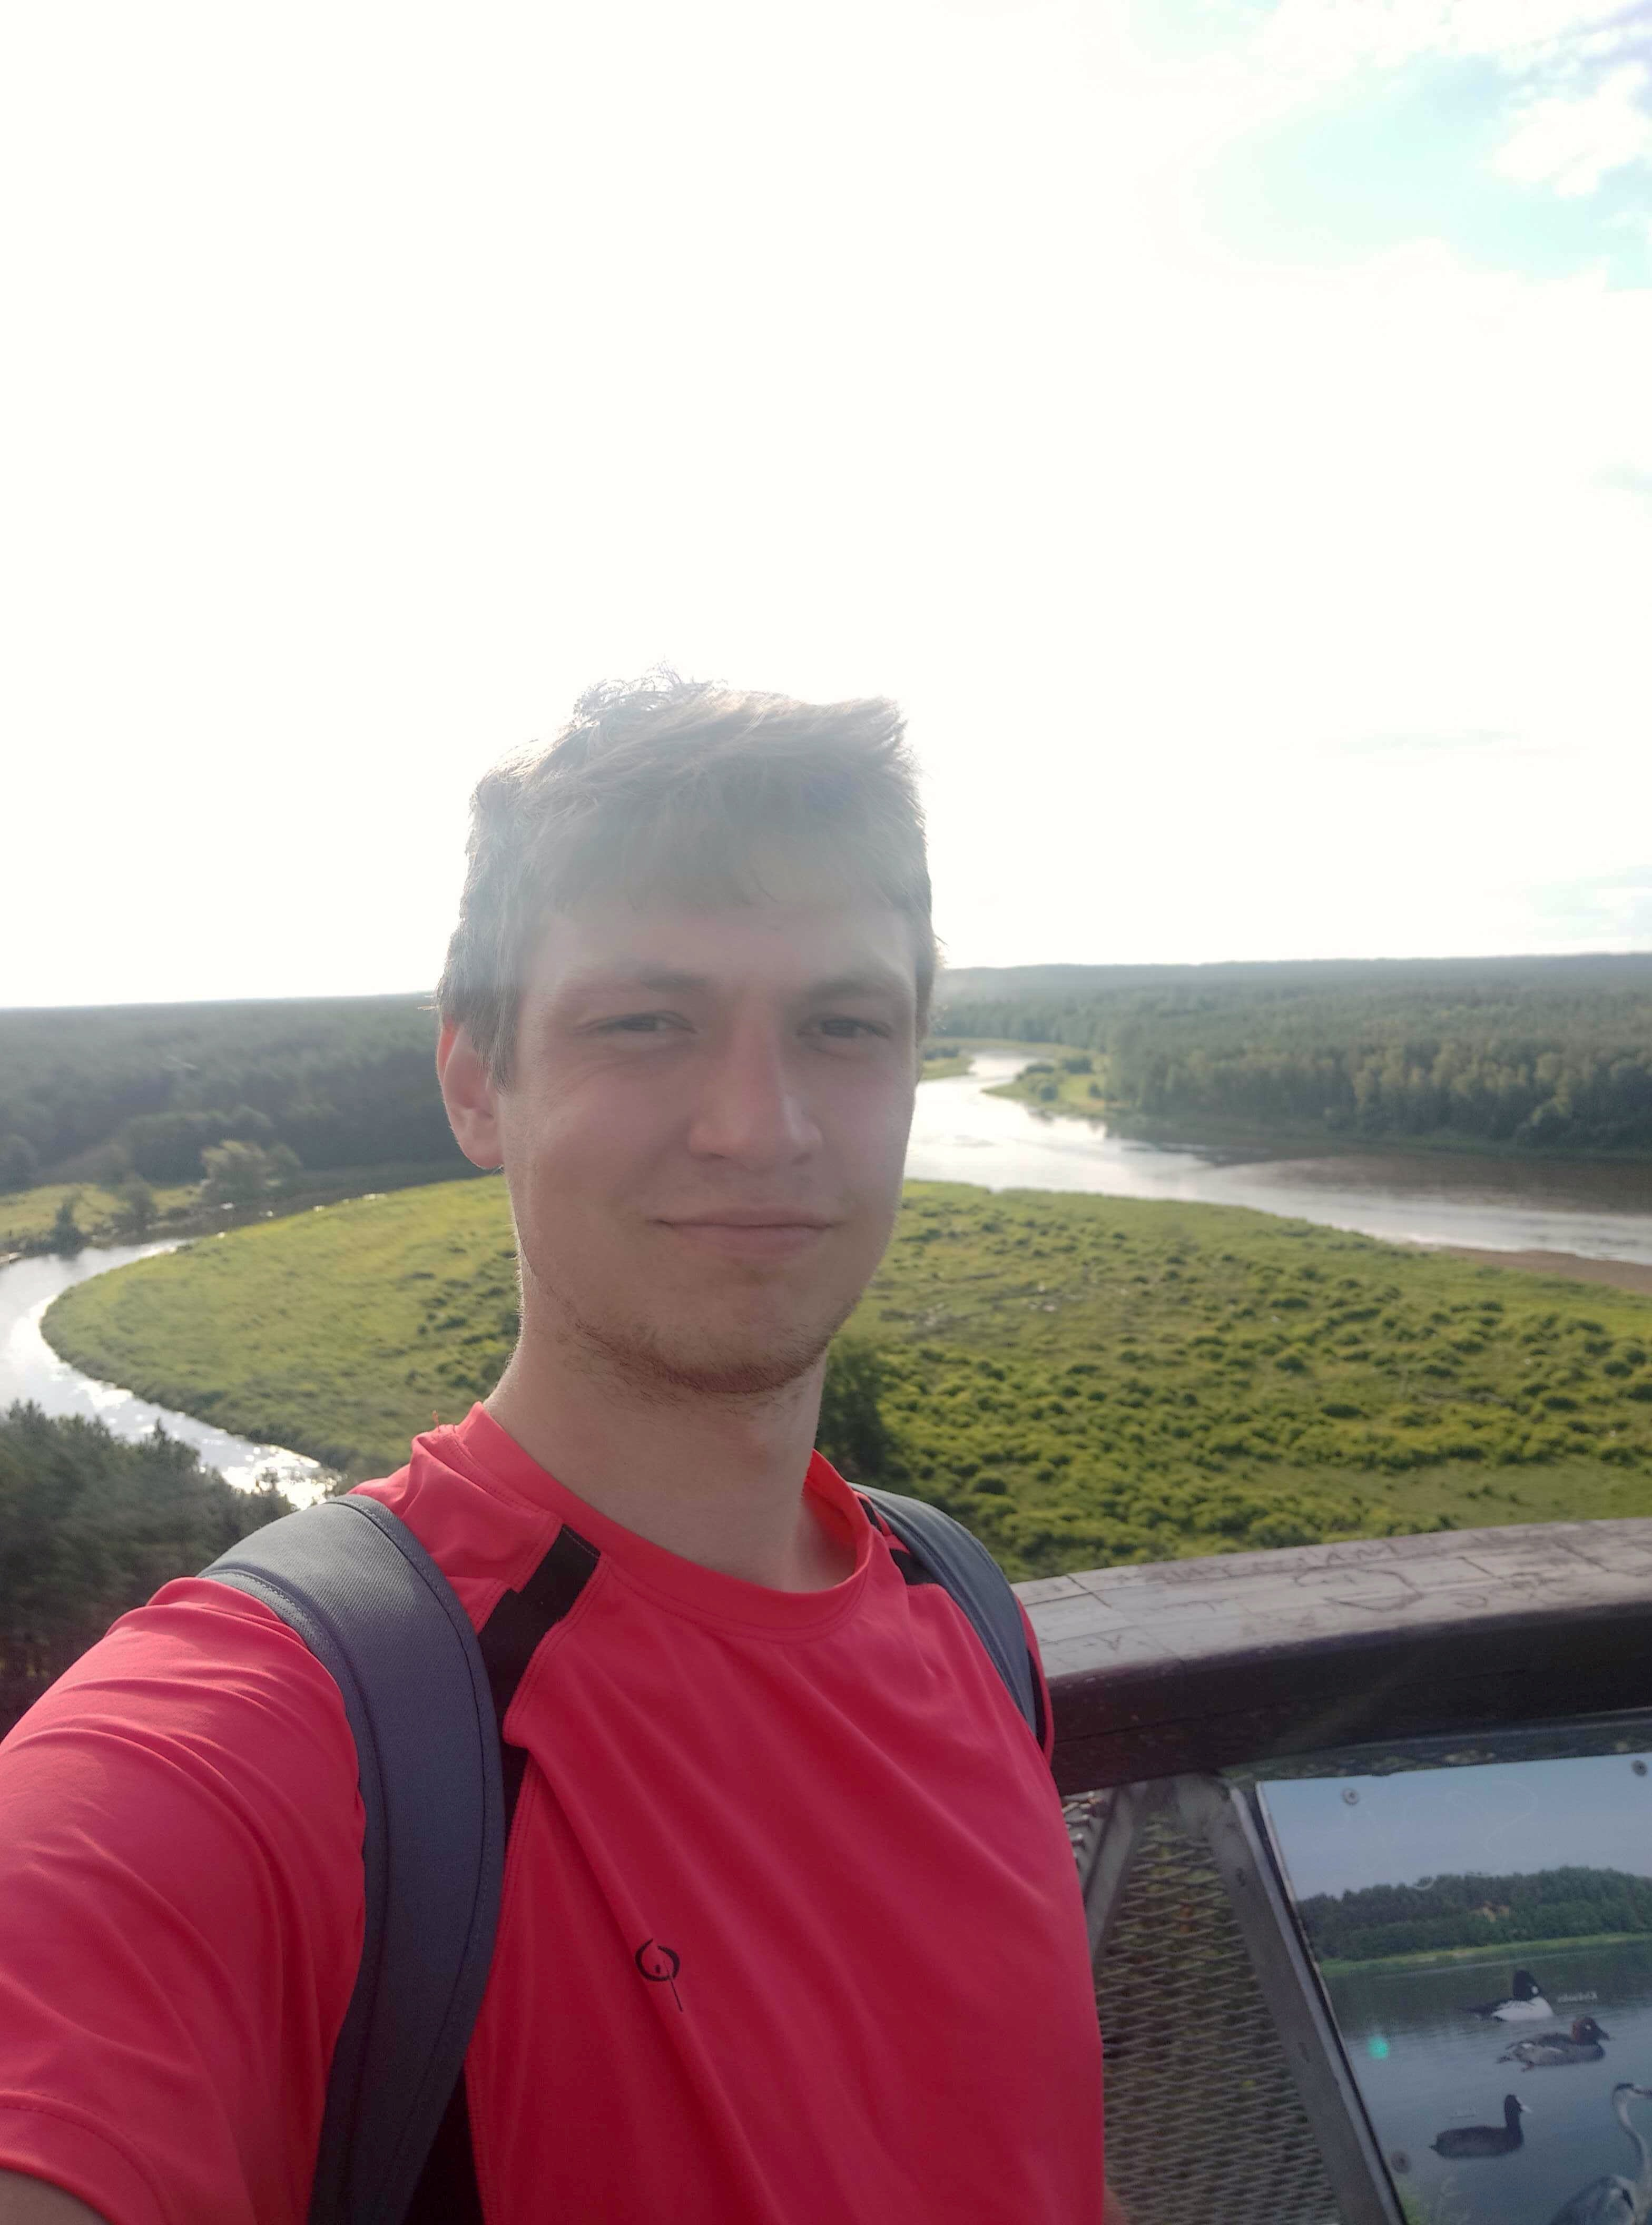 Meet Martynas, our new Mobile Developer.